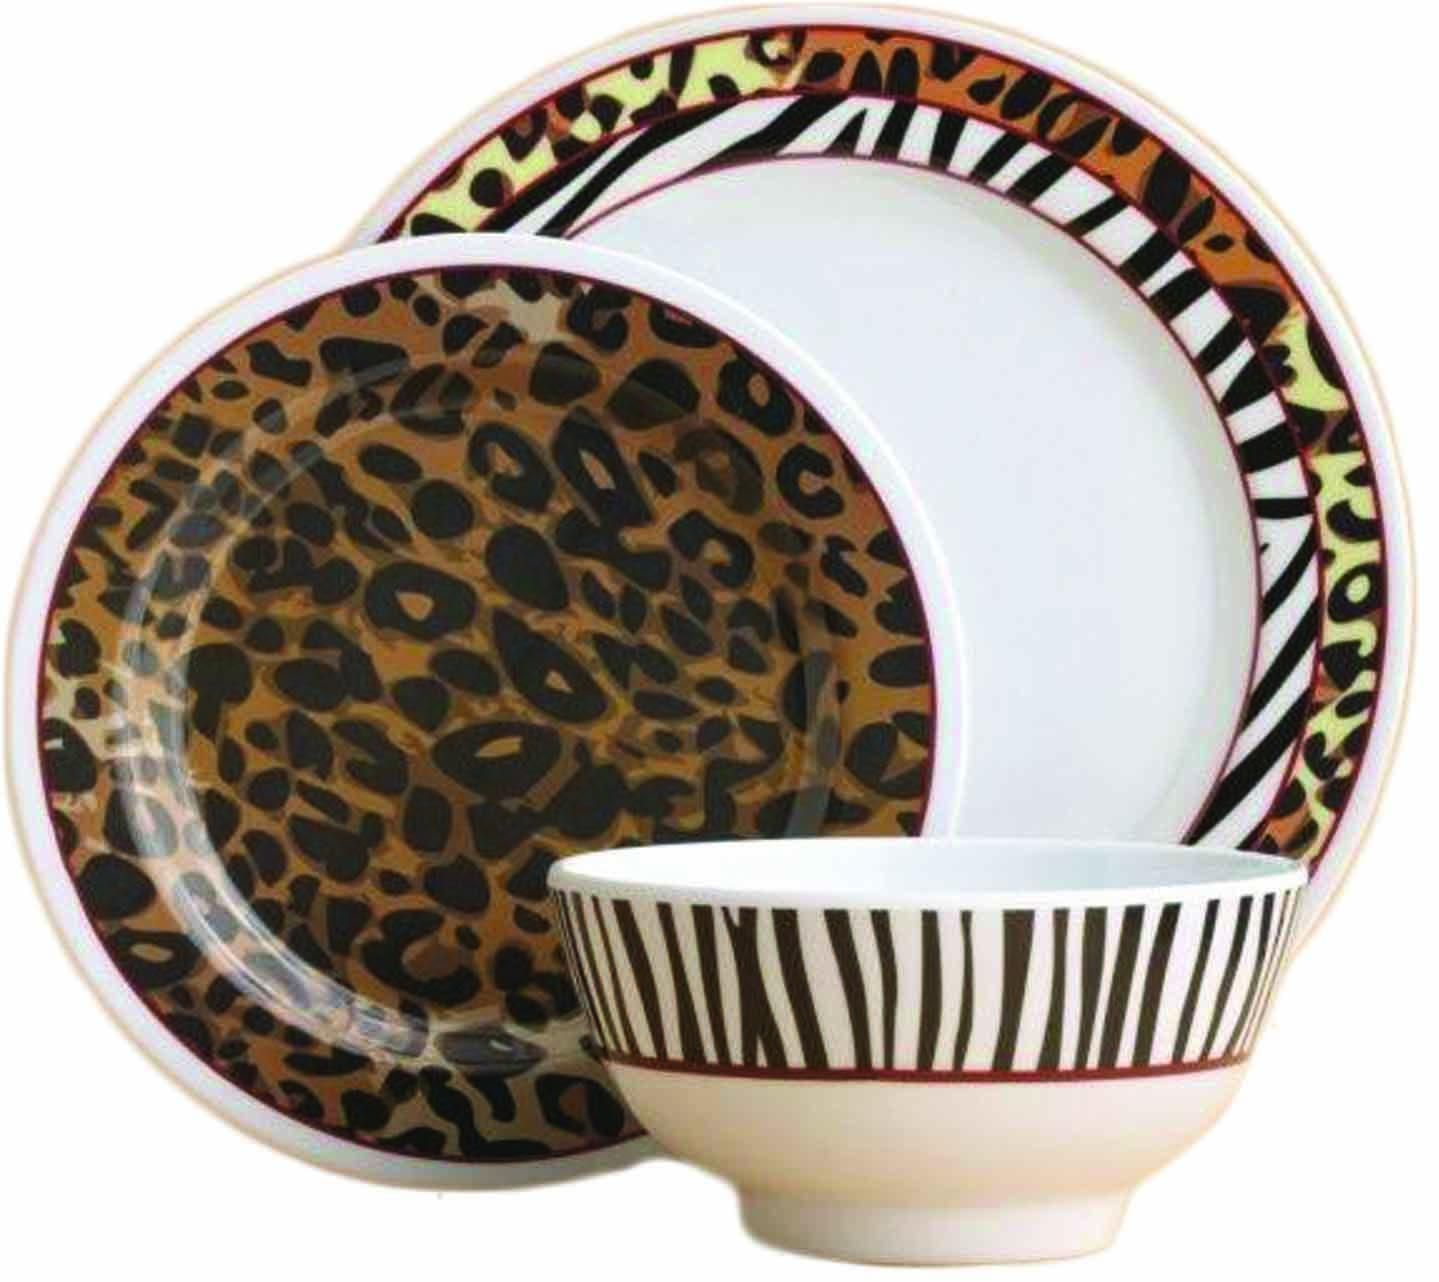 Ever since I moved out on my own and was able to decorate my own spaces I have always wanted a leopard print plate set!  sc 1 st  Pinterest & Ever since I moved out on my own and was able to decorate my own ...